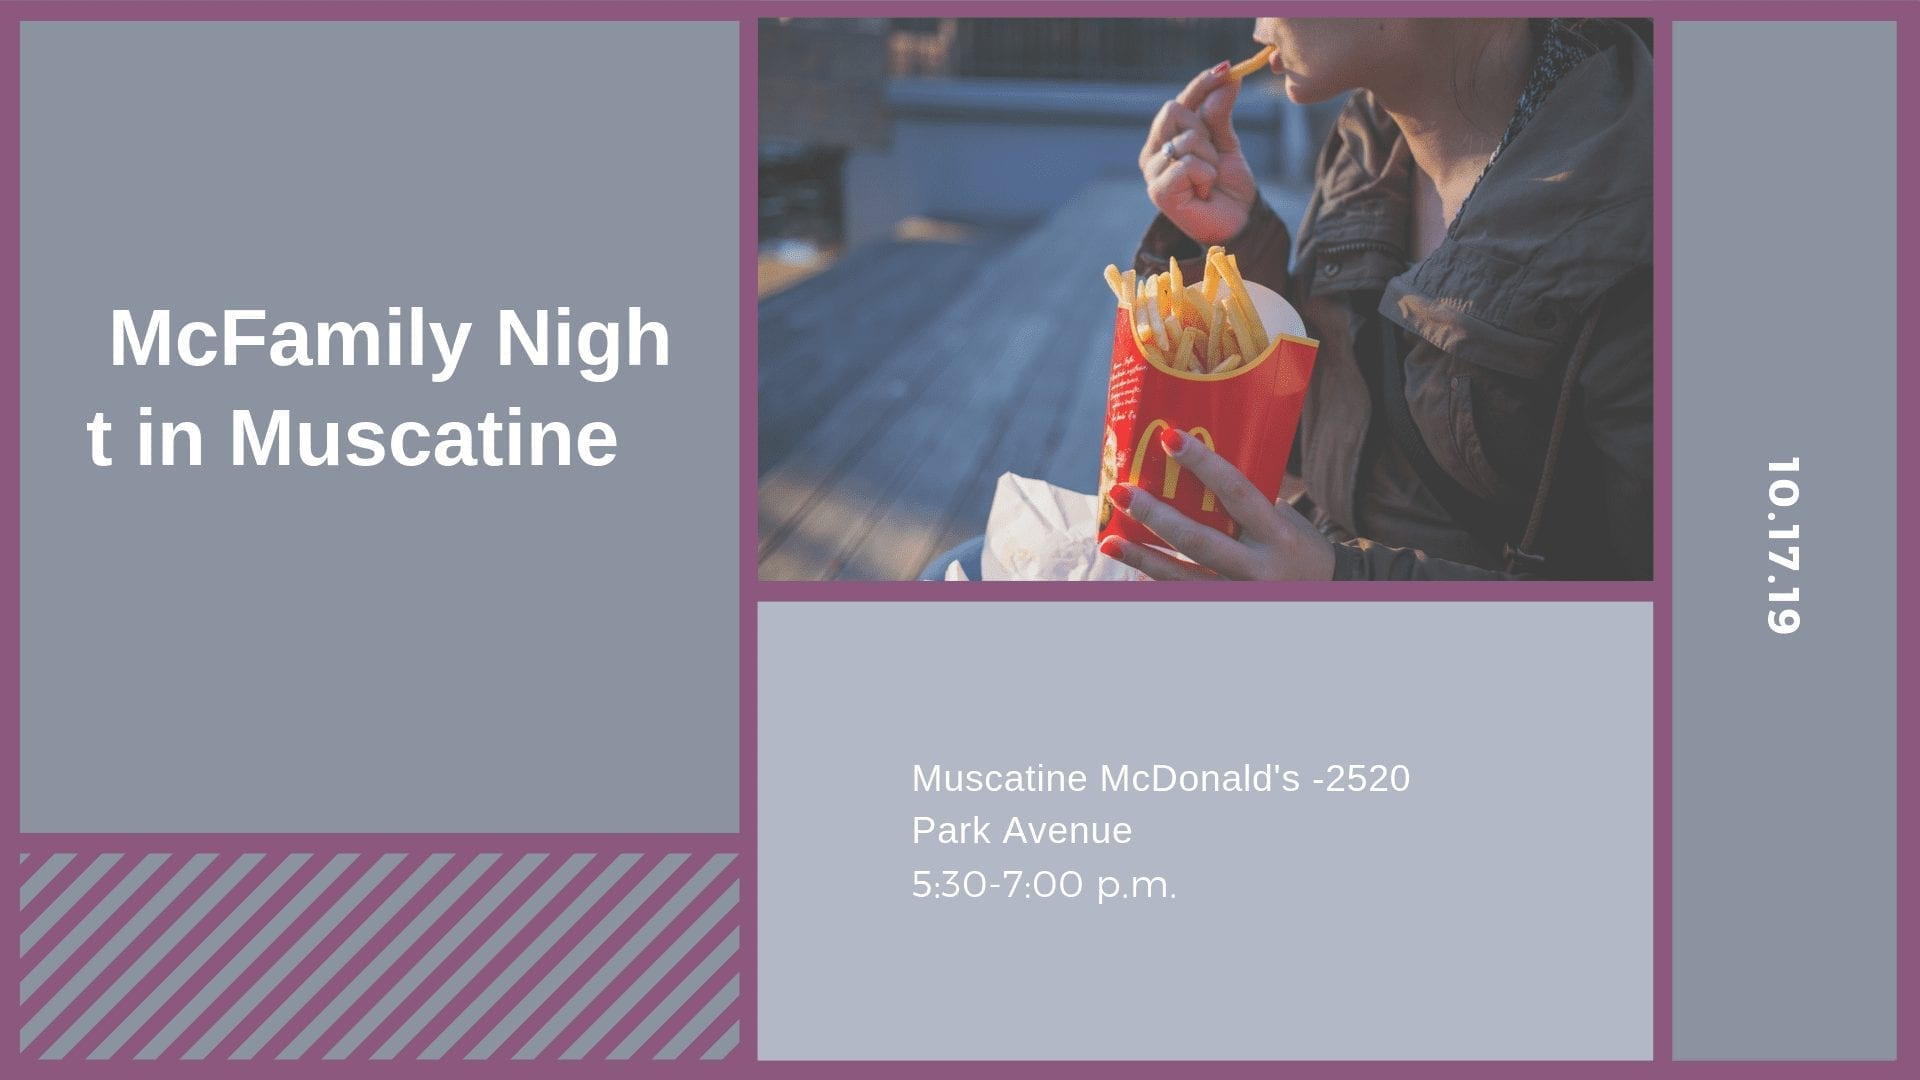 McFamily Night in Muscatine